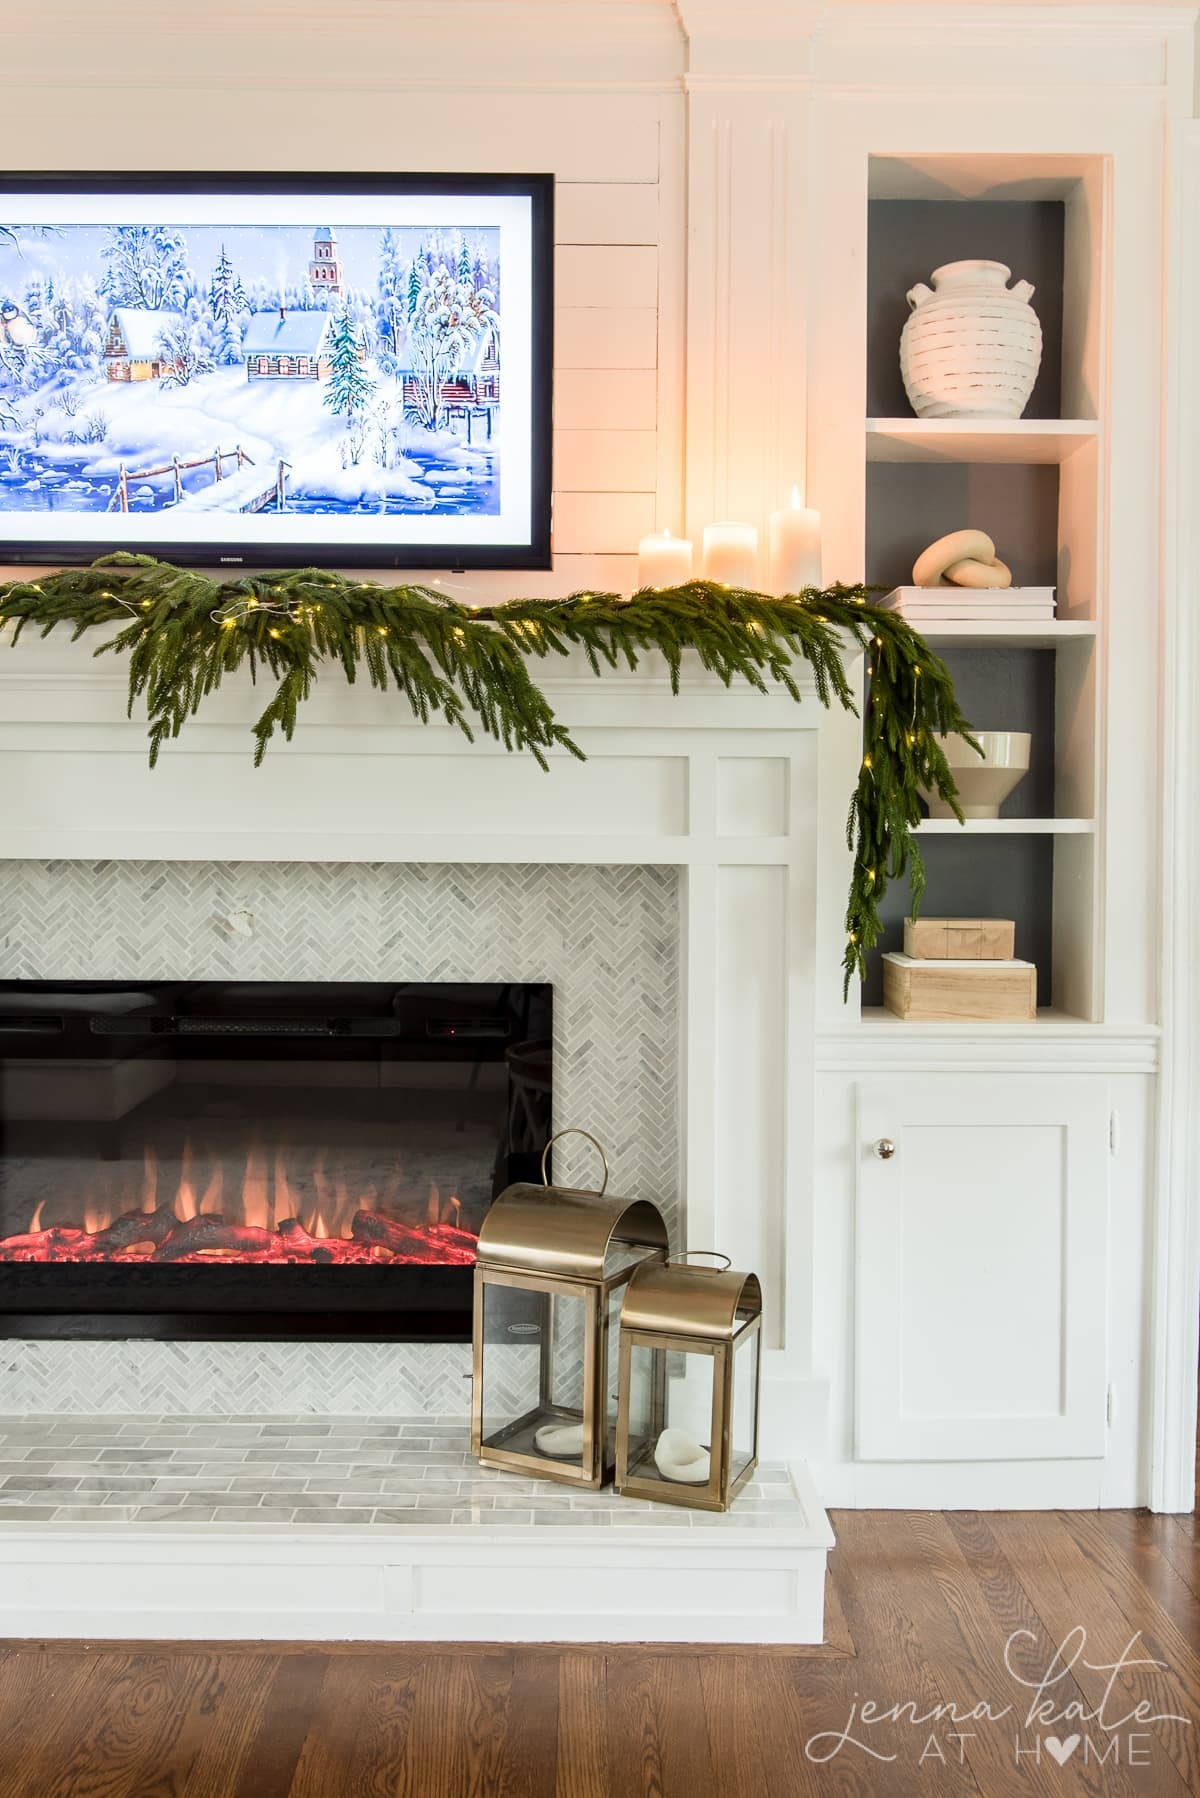 Pillar candles on a mantel surround by faux greenery